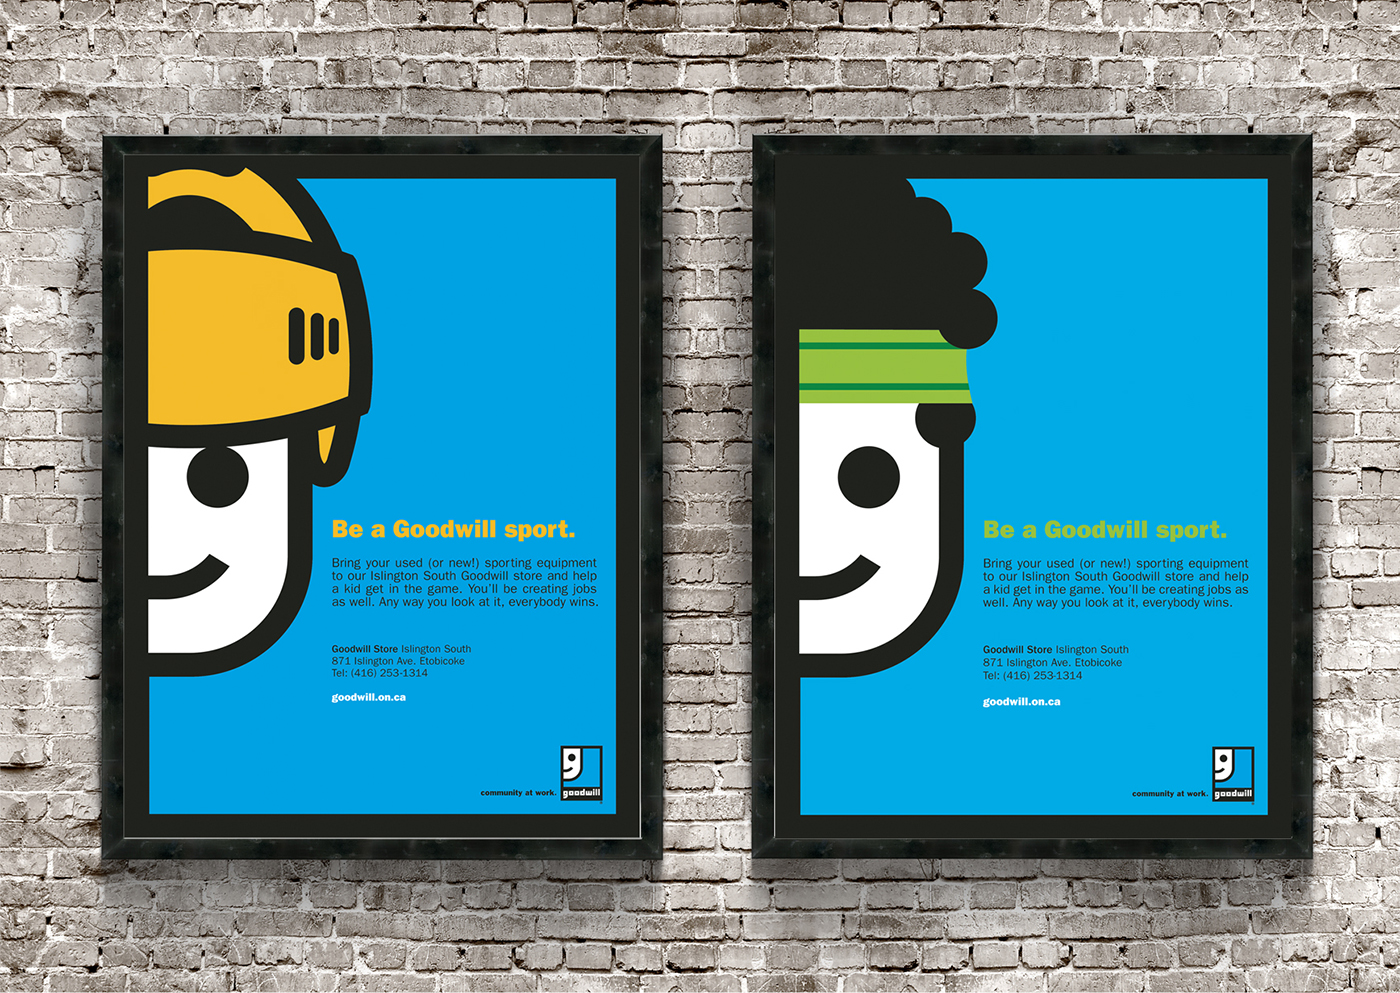 Goodwill poster design with blue background, flat designed quirky mascots dressed in sports athletic gear.